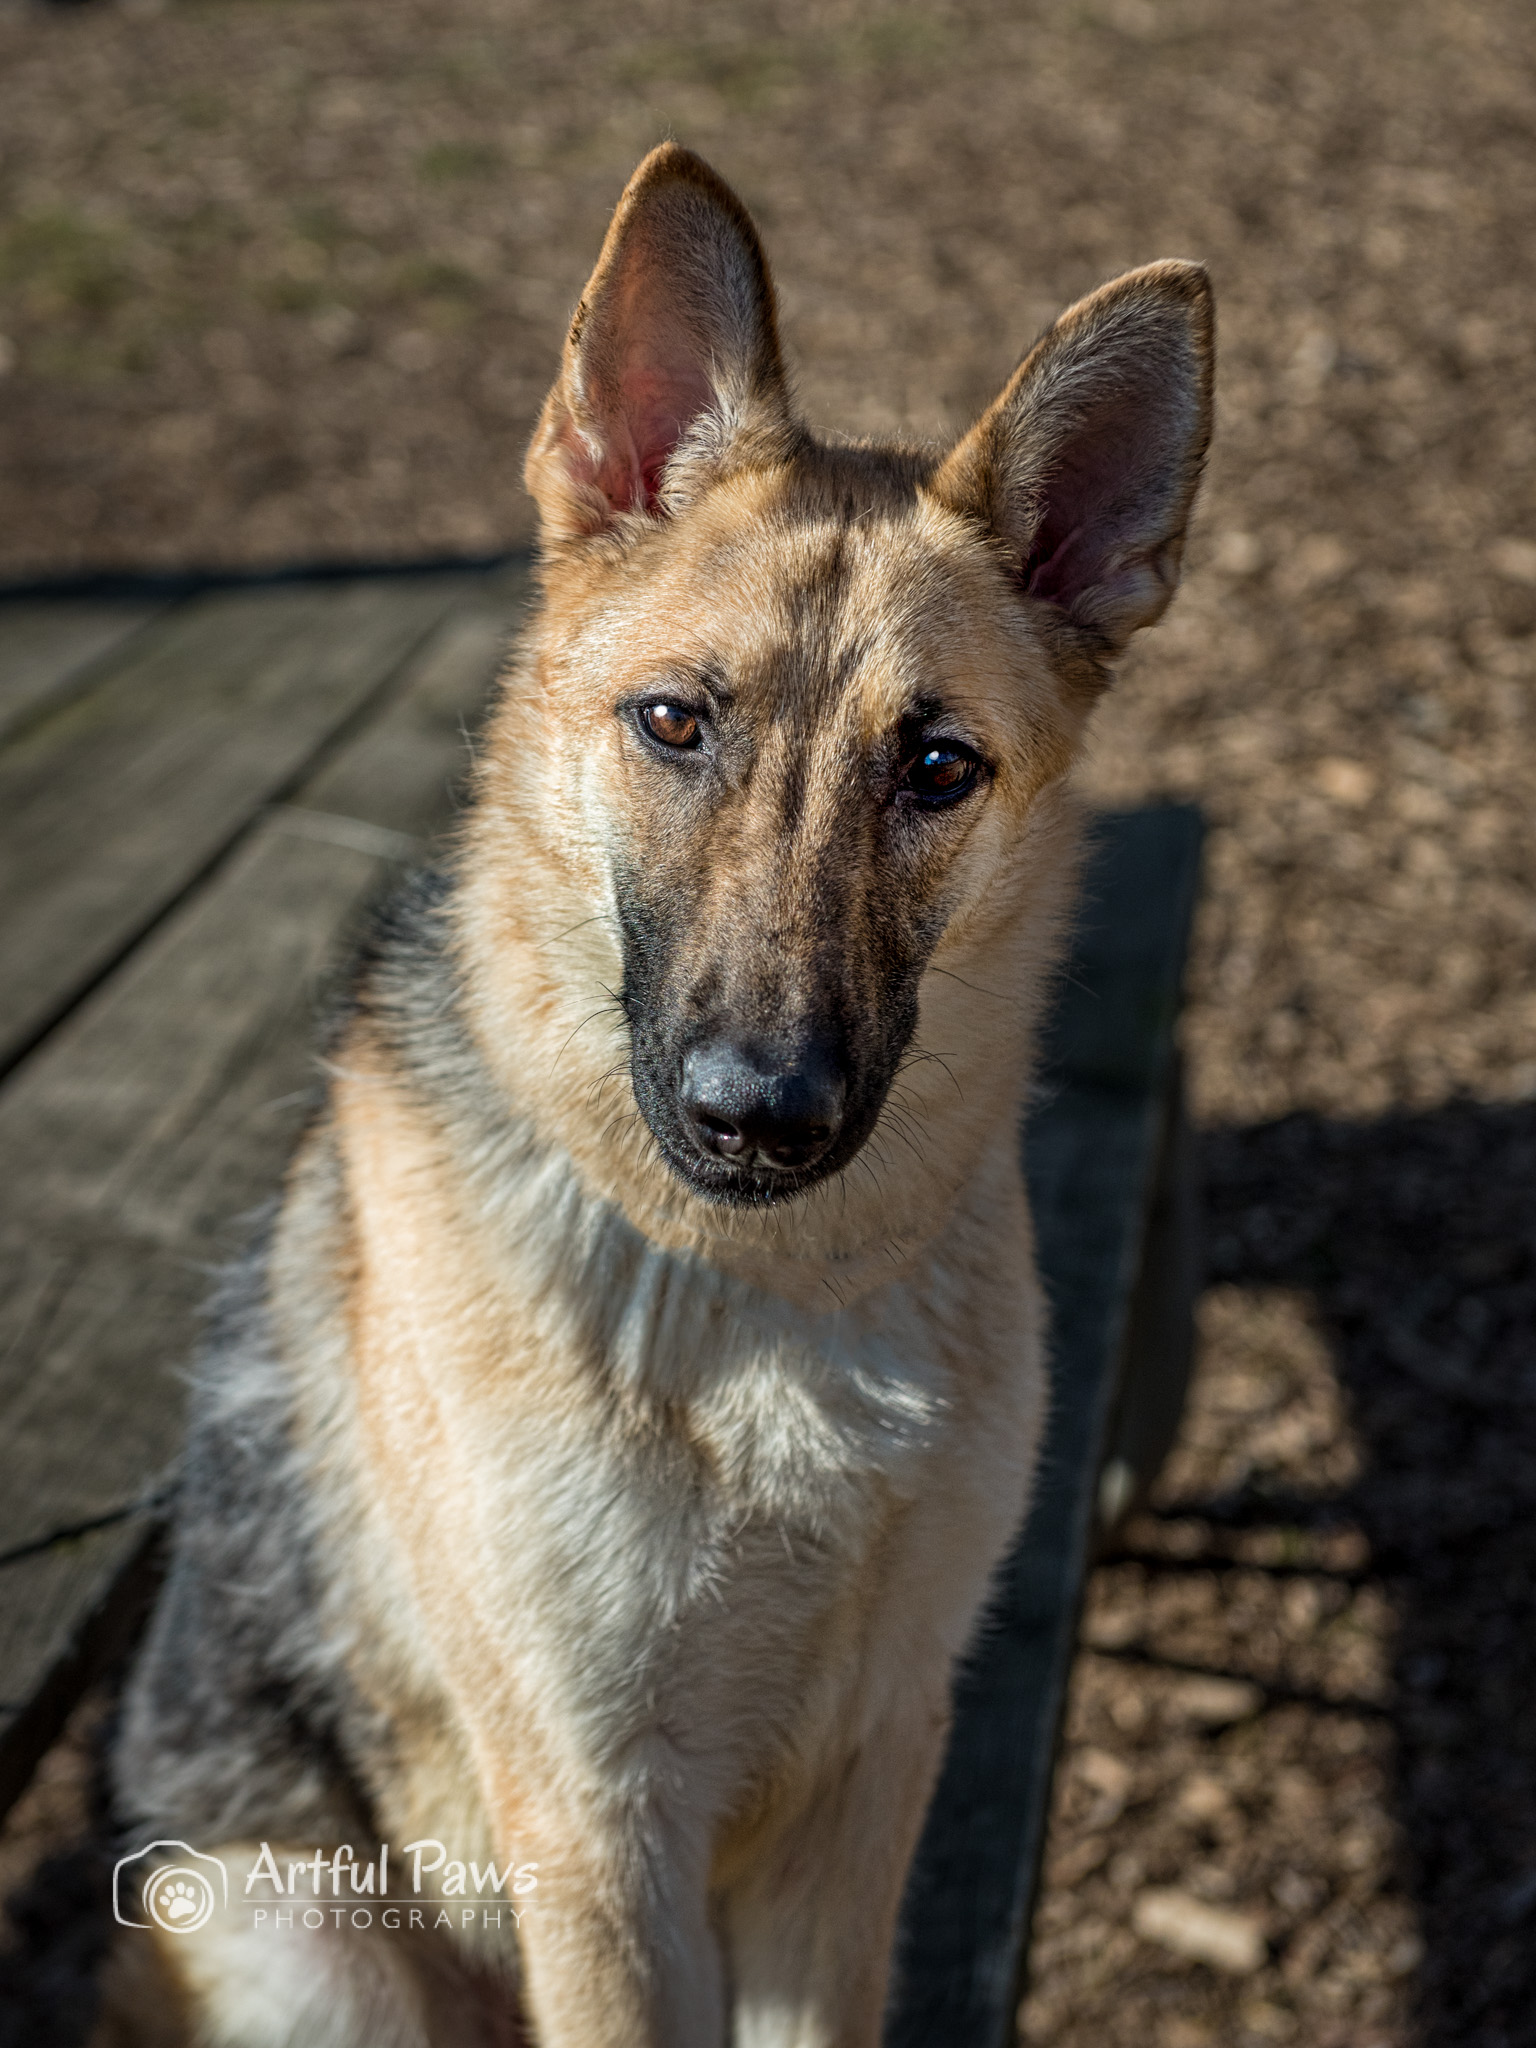 Sweet And Smart Rescue Pet Of The Week Fairfax Va Dog